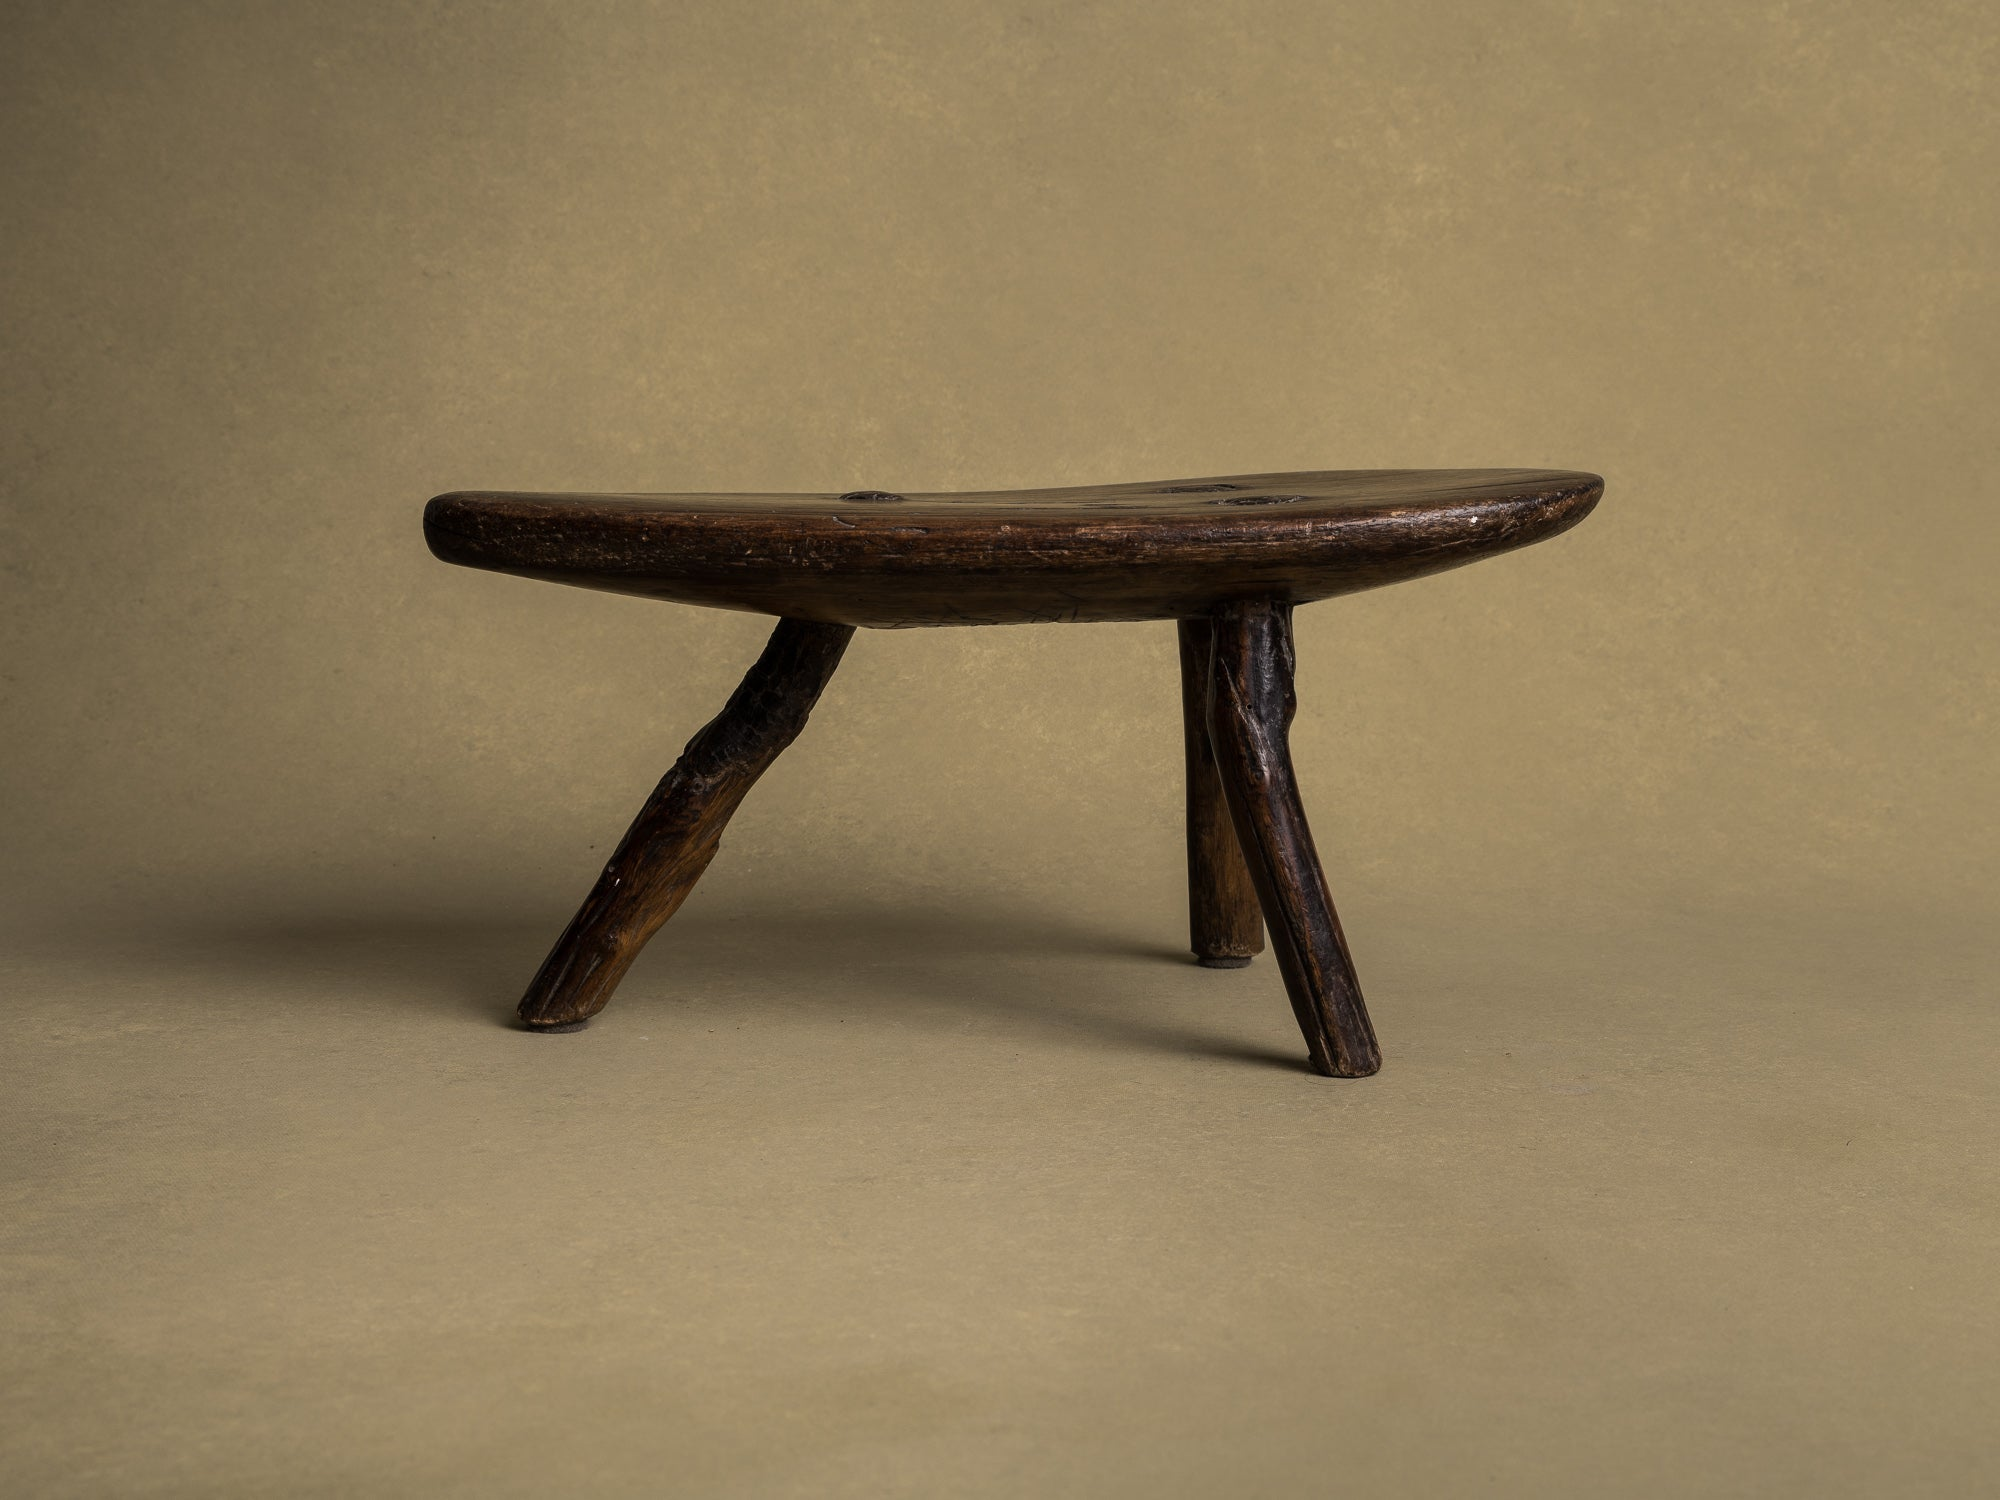 Tabouret de traite, art paysan auvergnat, France (XIXe siècle)..Milking stool, Auvergne peasant art, France (19th century)